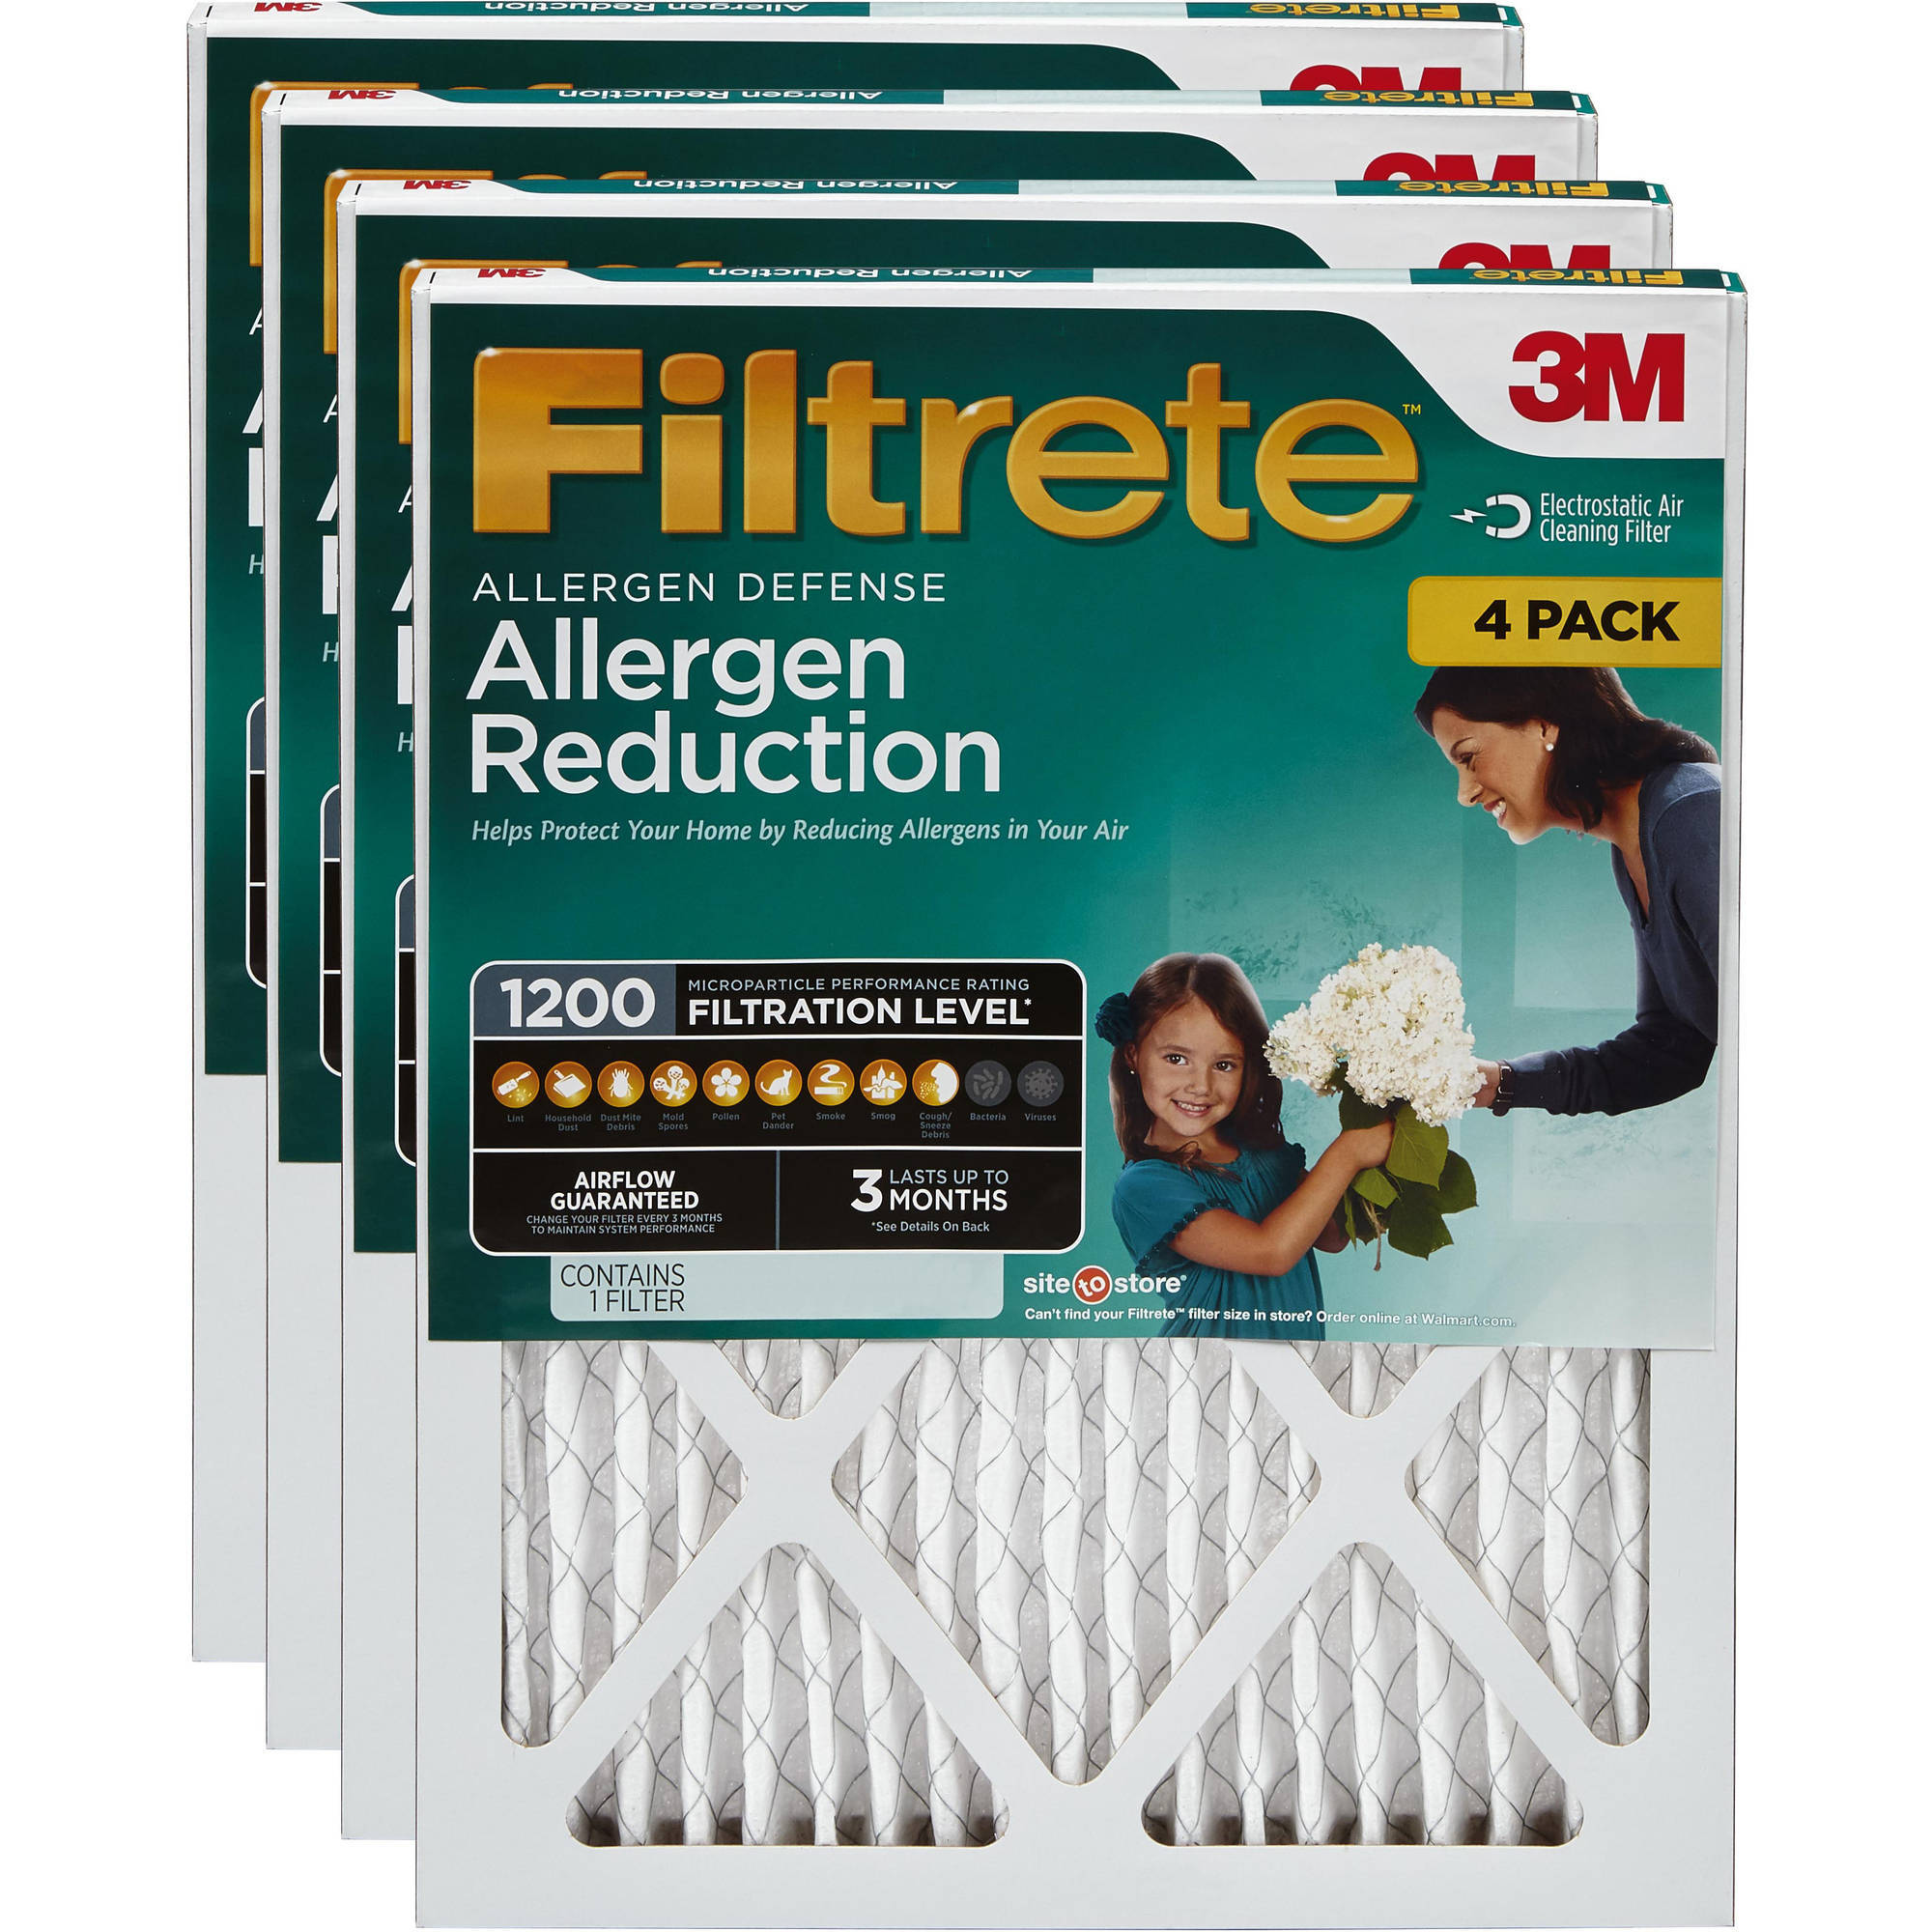 Filtrete Allergen Reduction 1200 Air and Furnace Filter, 4-pack, Available in Multiple Sizes<br />